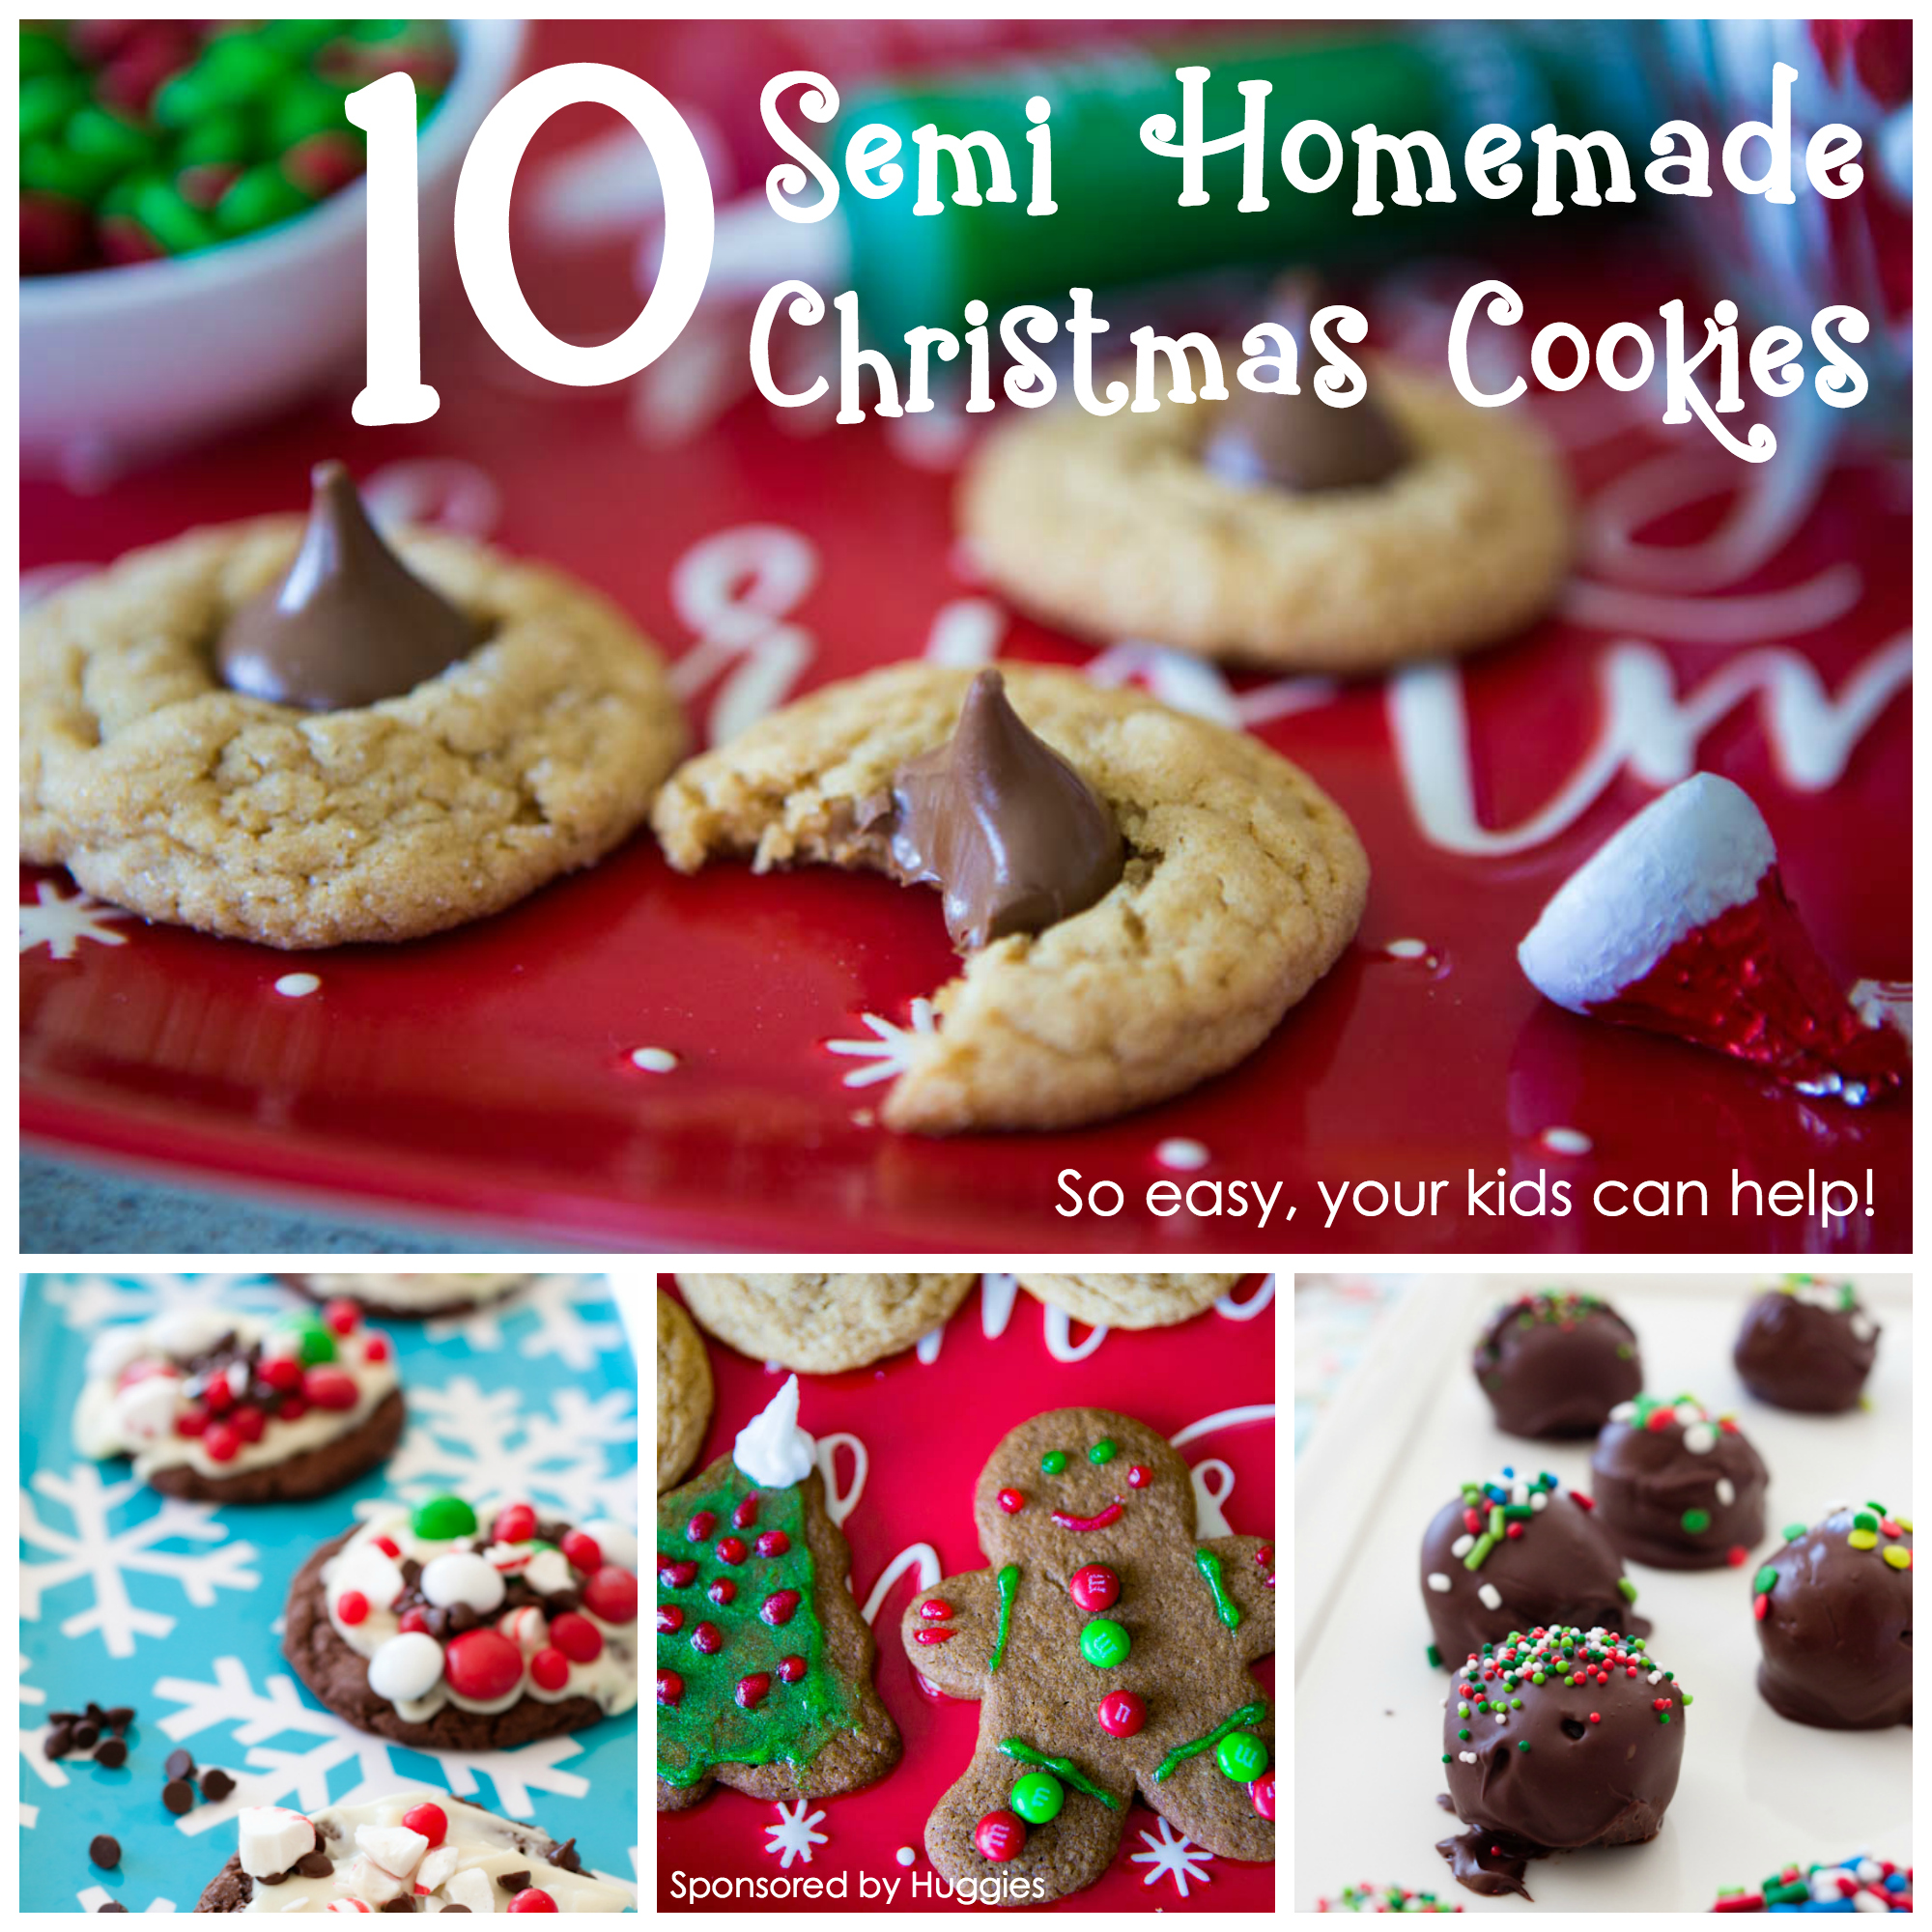 10 semi homemade Christmas cookies for kids that are easy to bake.